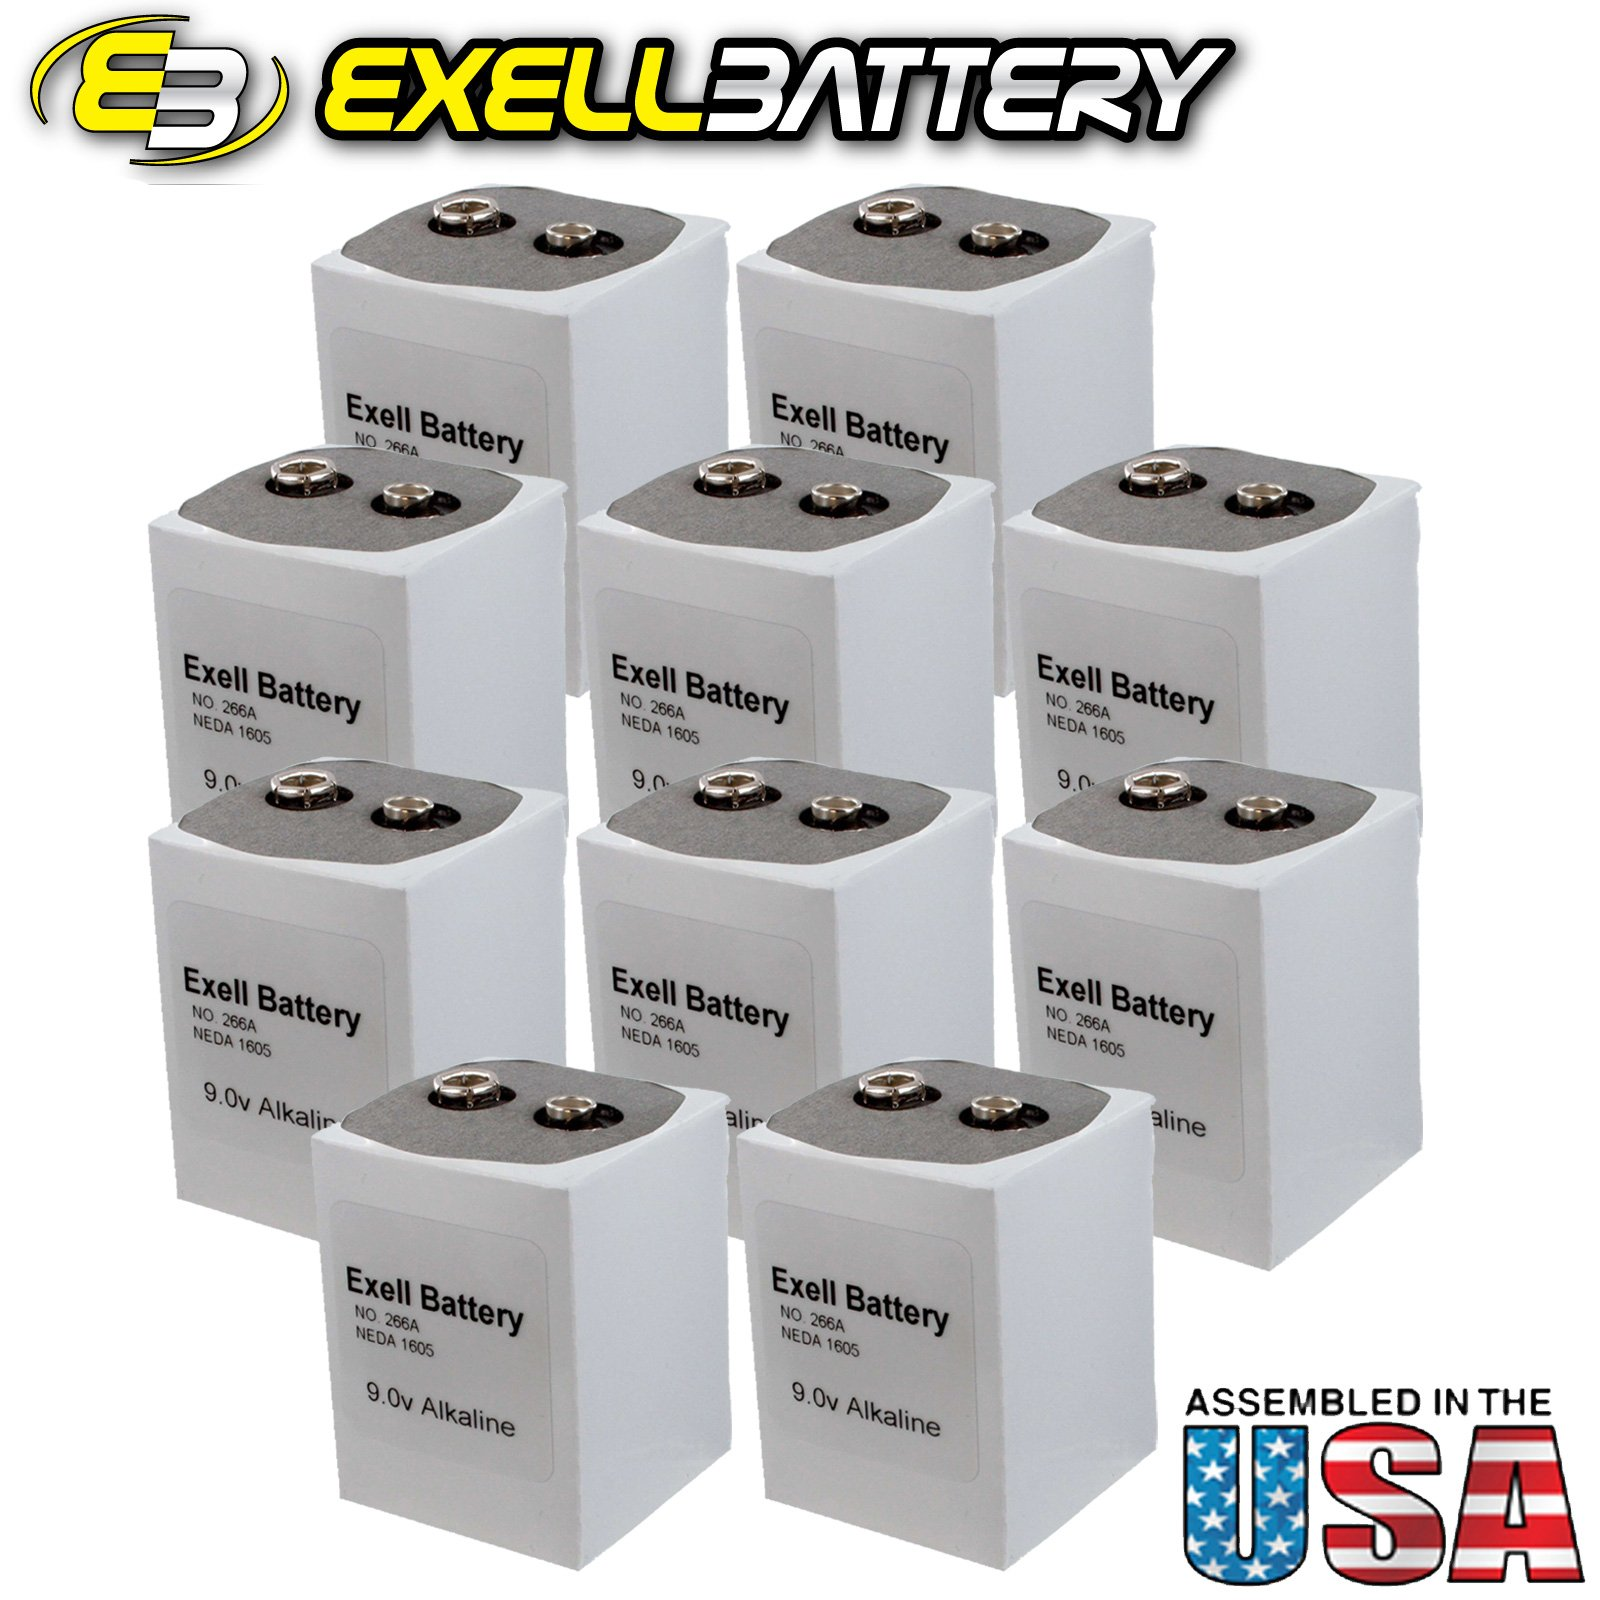 10pc Exell 266 Alkaline 9V Battery NEDA 1605, PP7, 6F90